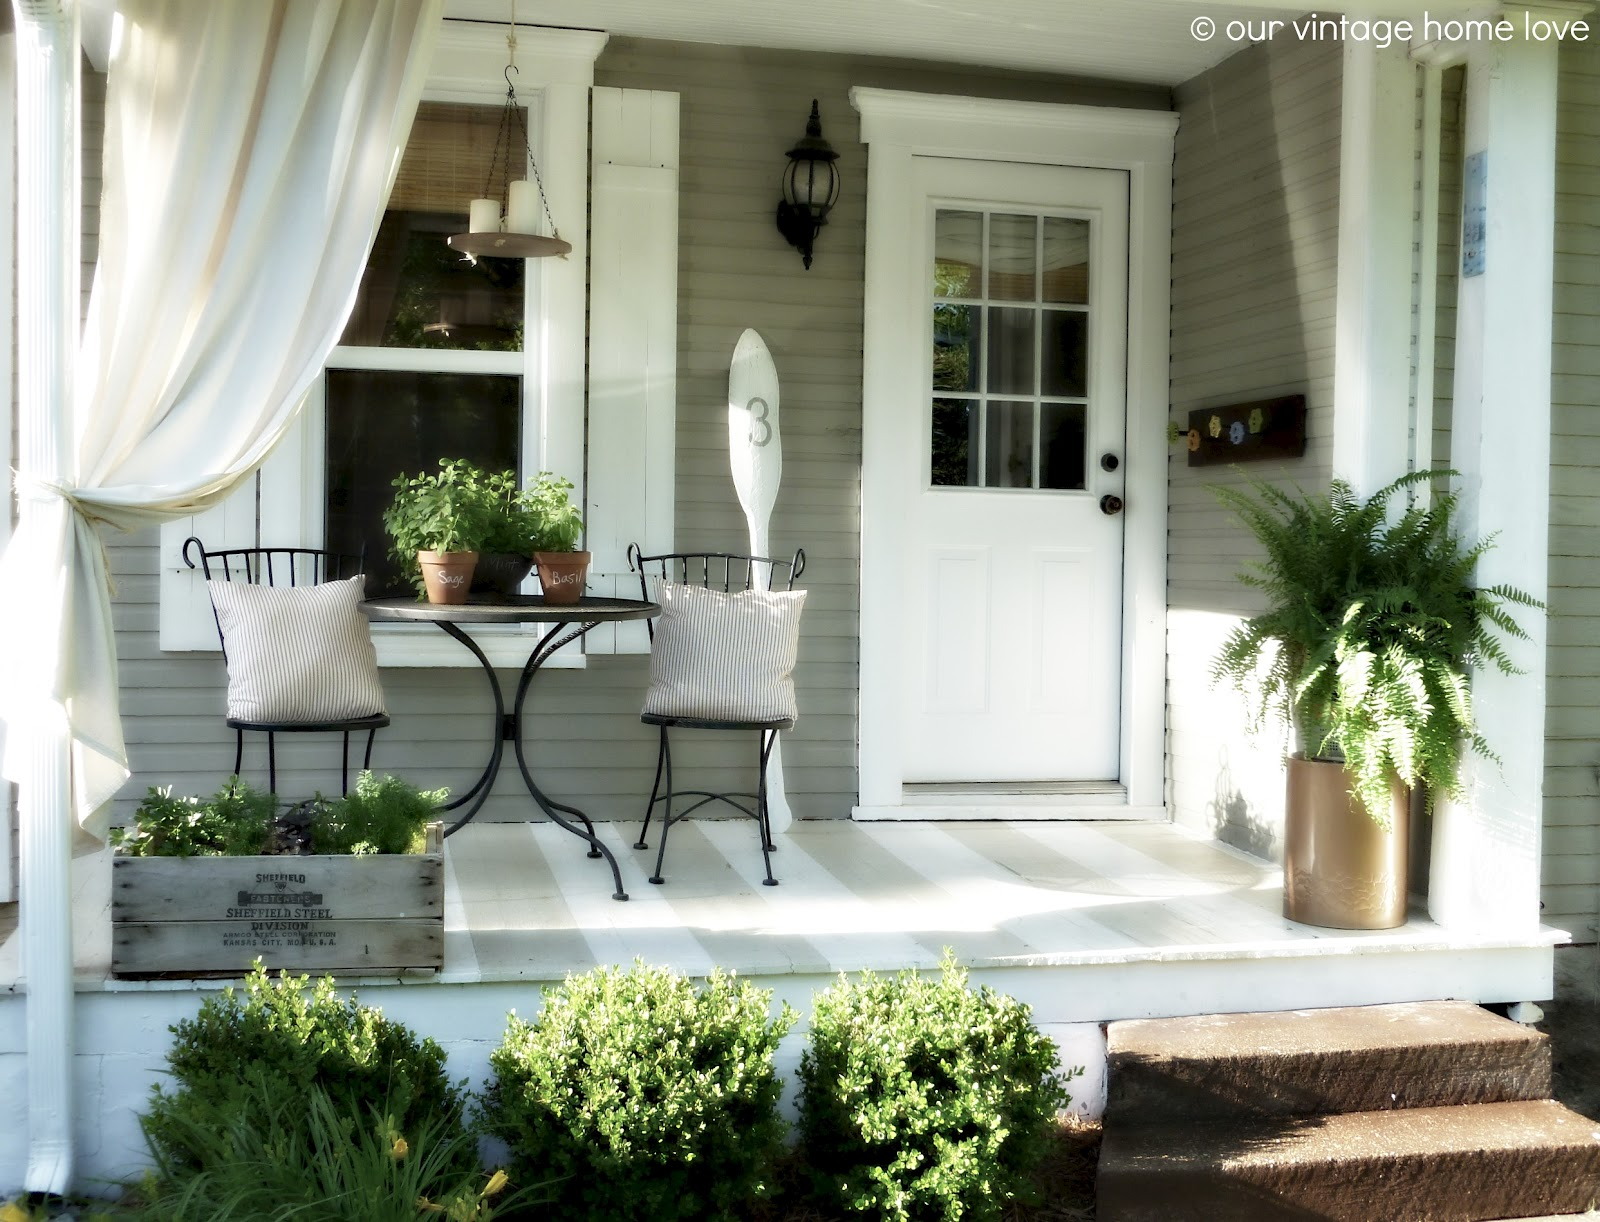 our vintage home love: Back/Side Porch Ideas For Summer and An